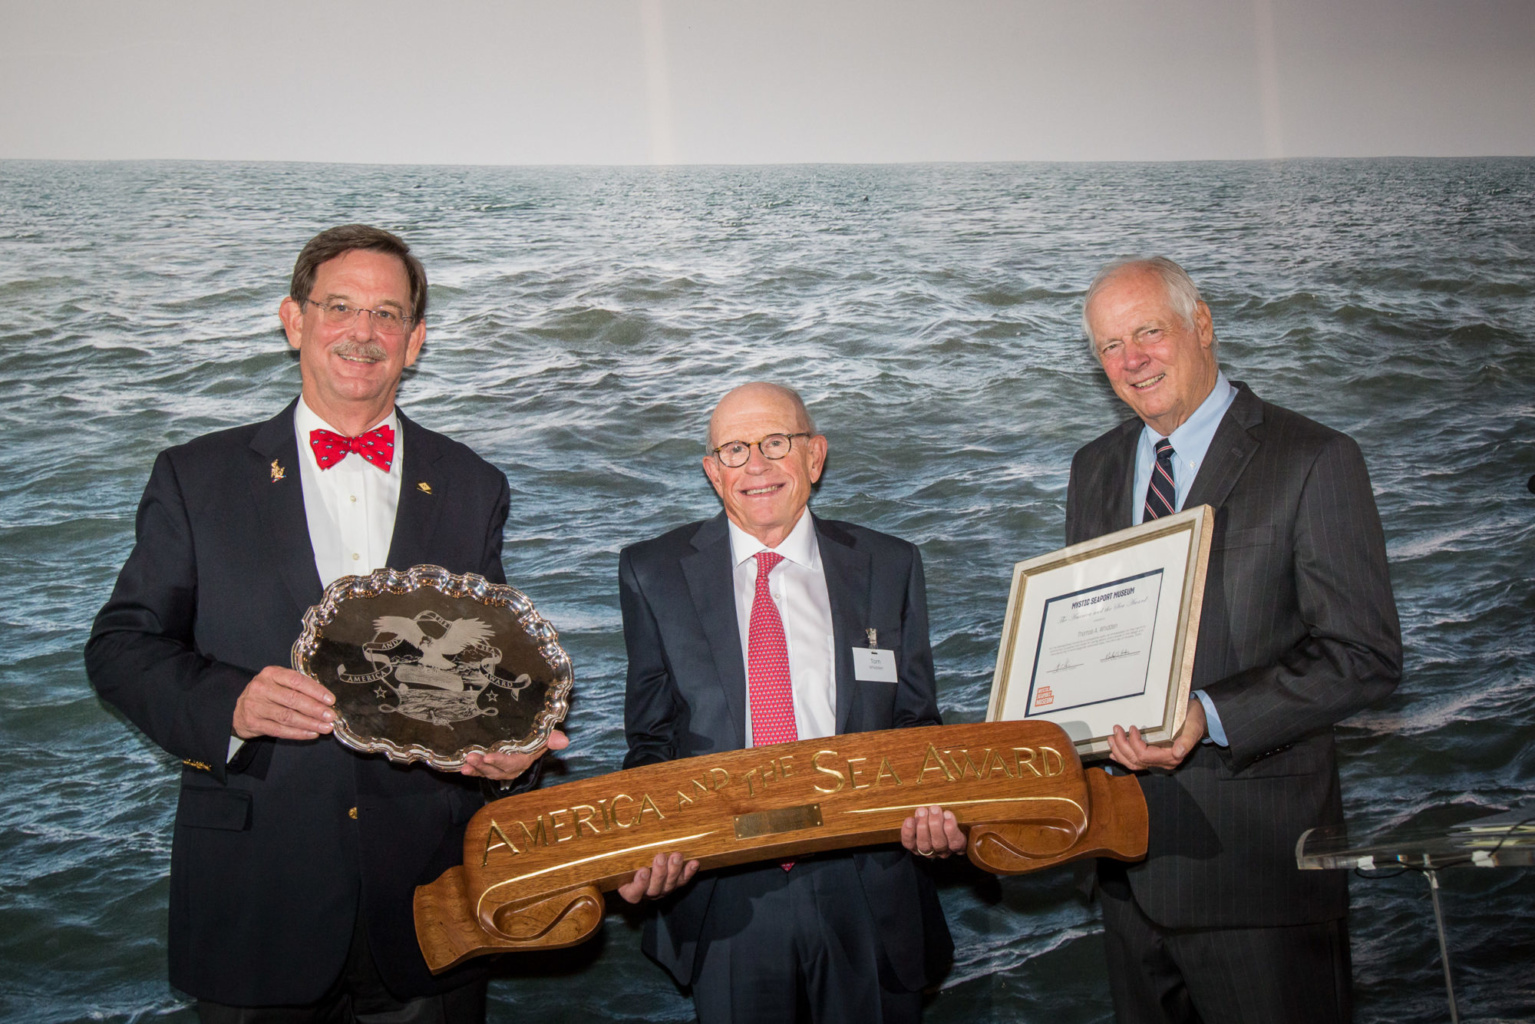 Tom Whidden, Mystic Seaport Award 2020